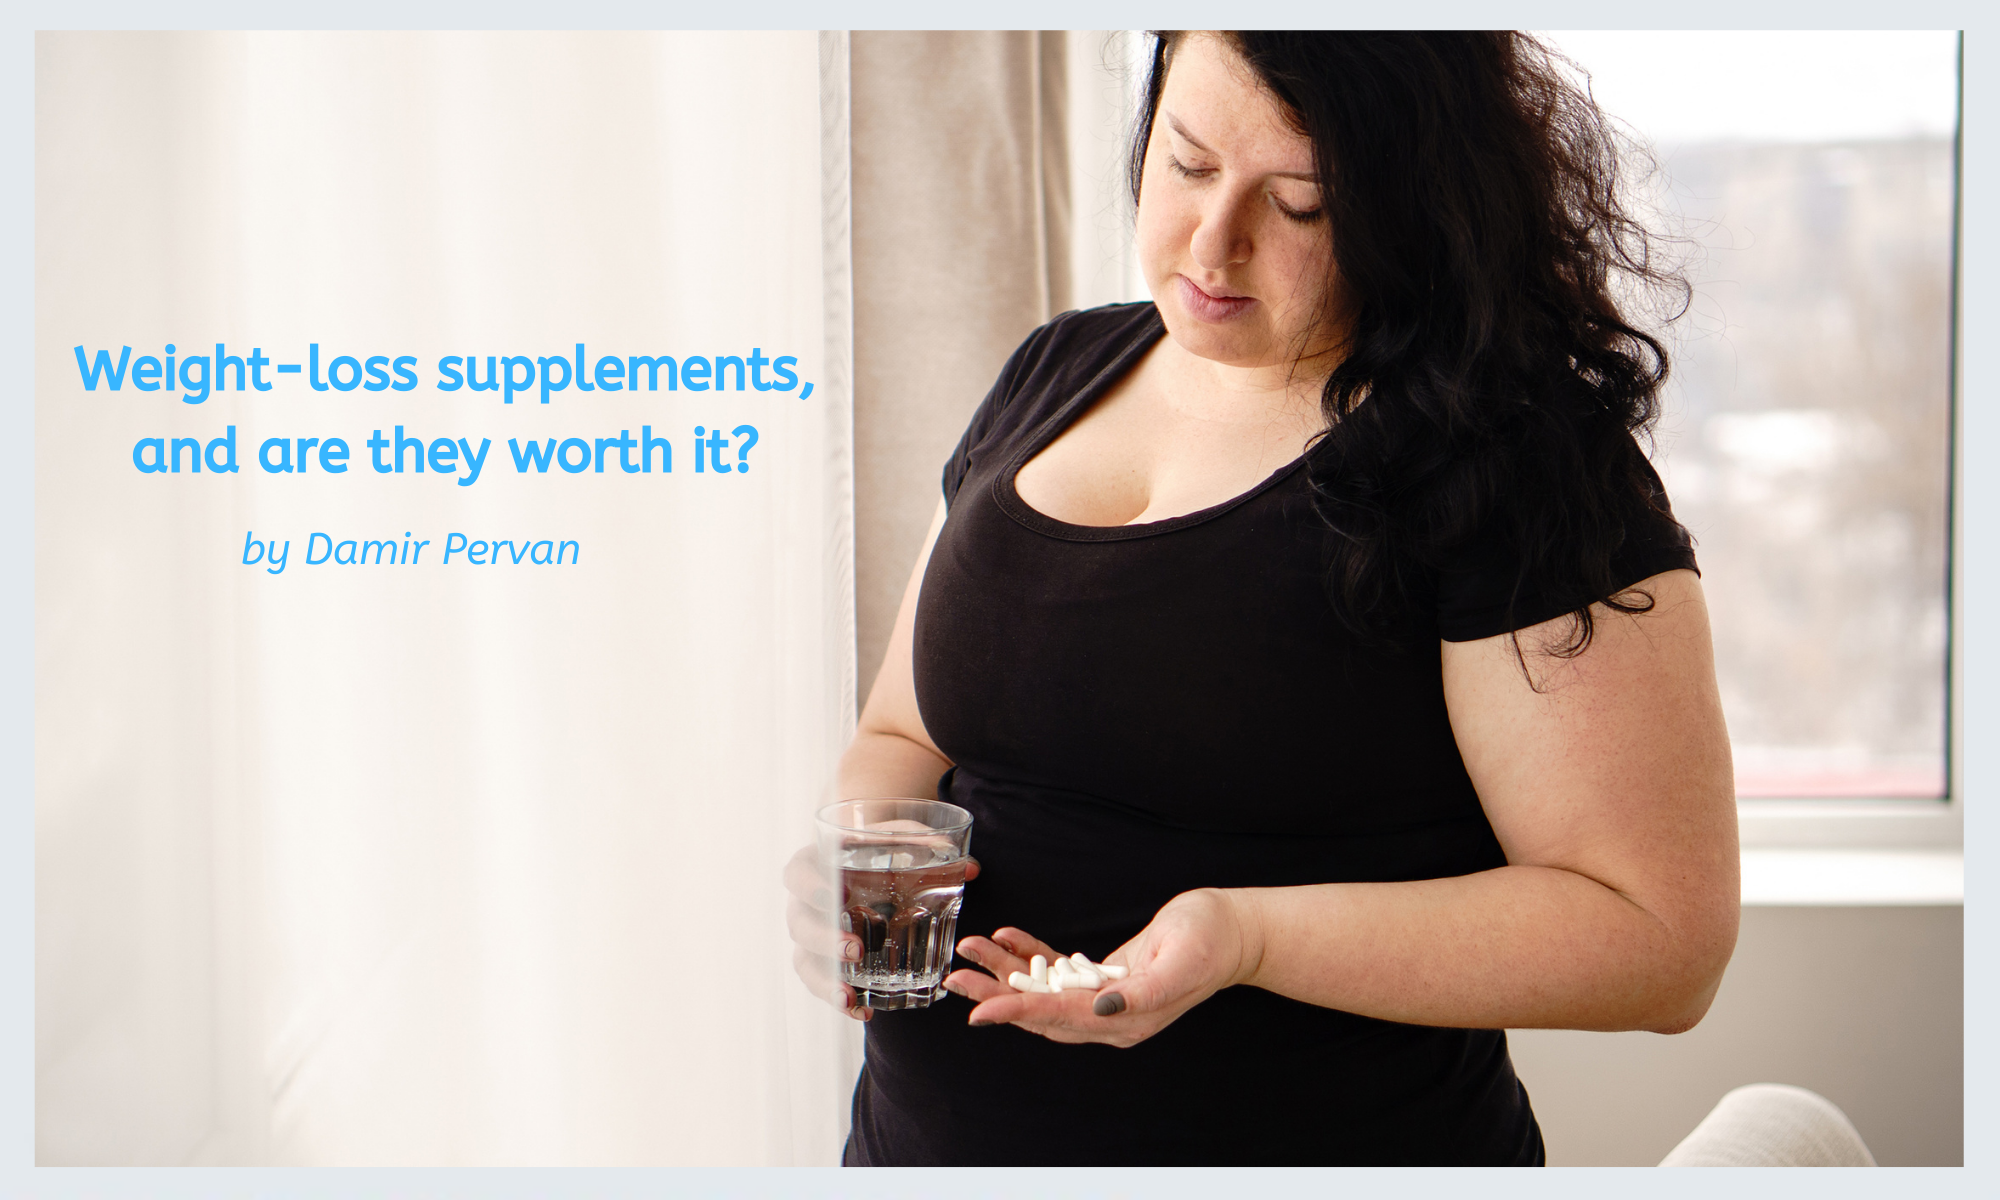 Weight-loss supplements and are they worth it